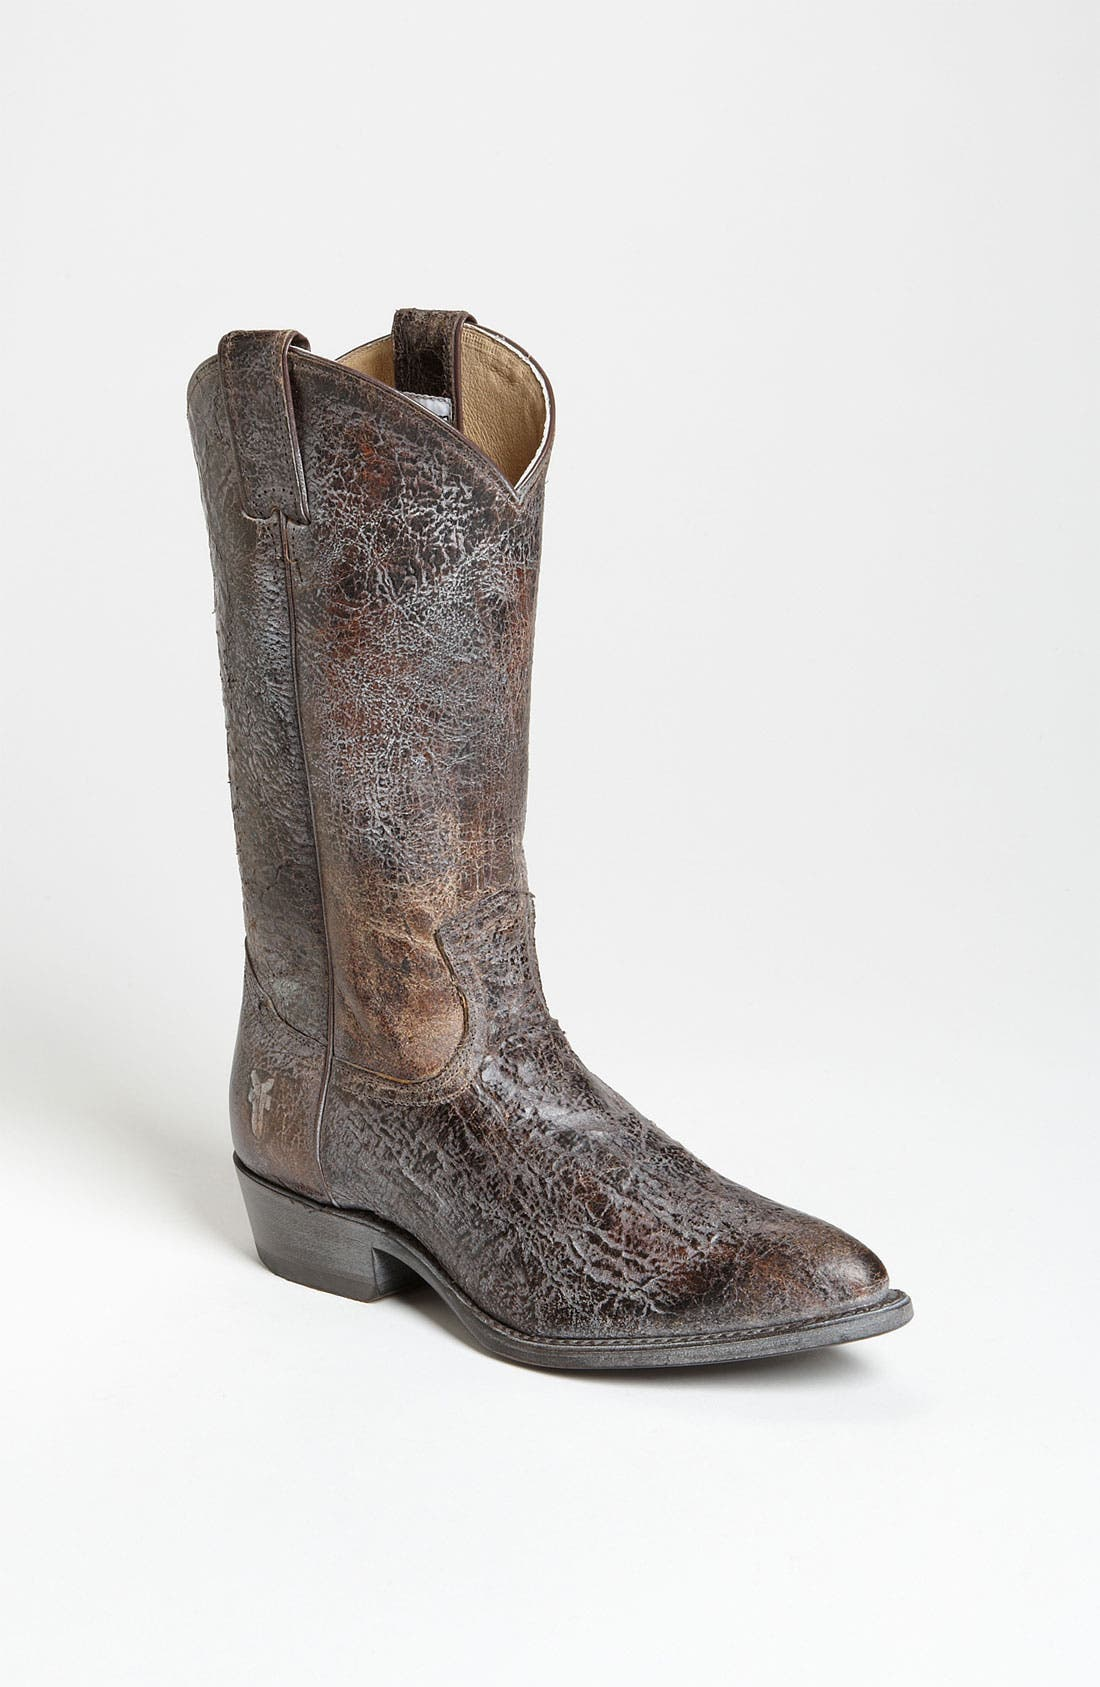 Alternate Image 1 Selected - Frye 'Billy' Boot